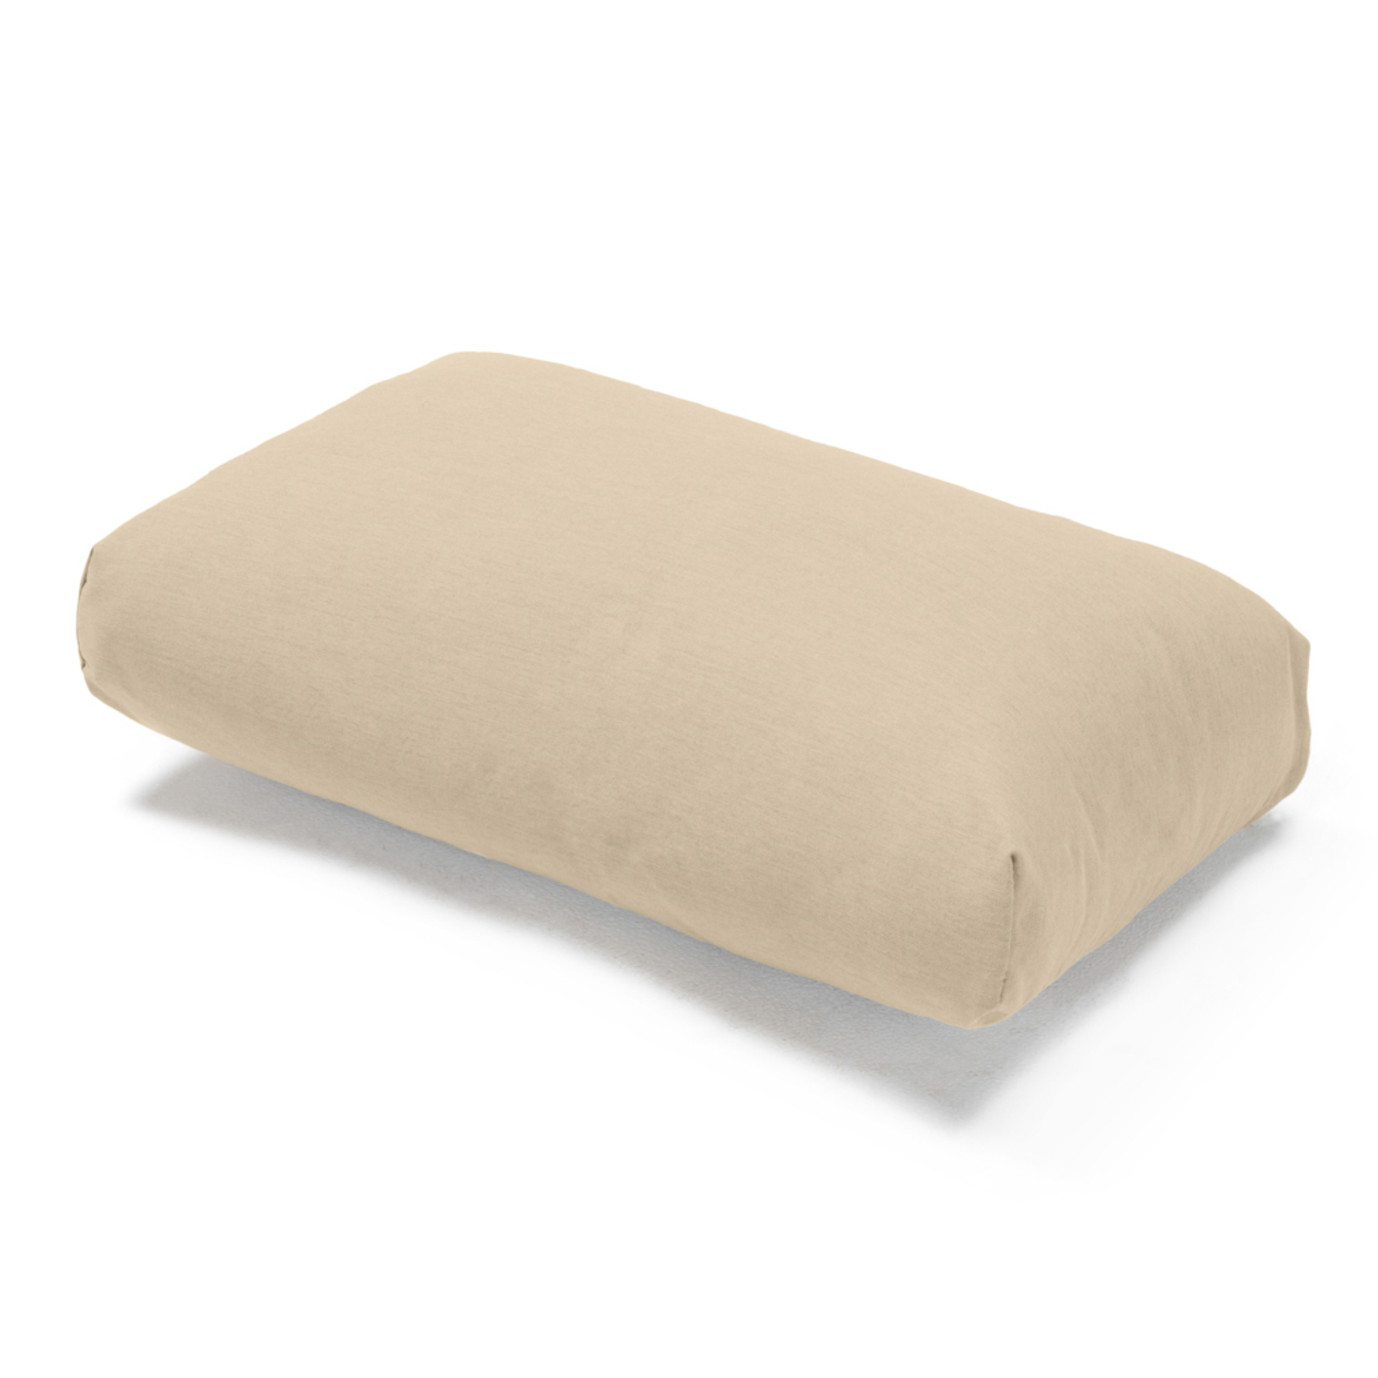 Portofino Comfort Club Chair Back Cushion - Heather Beige